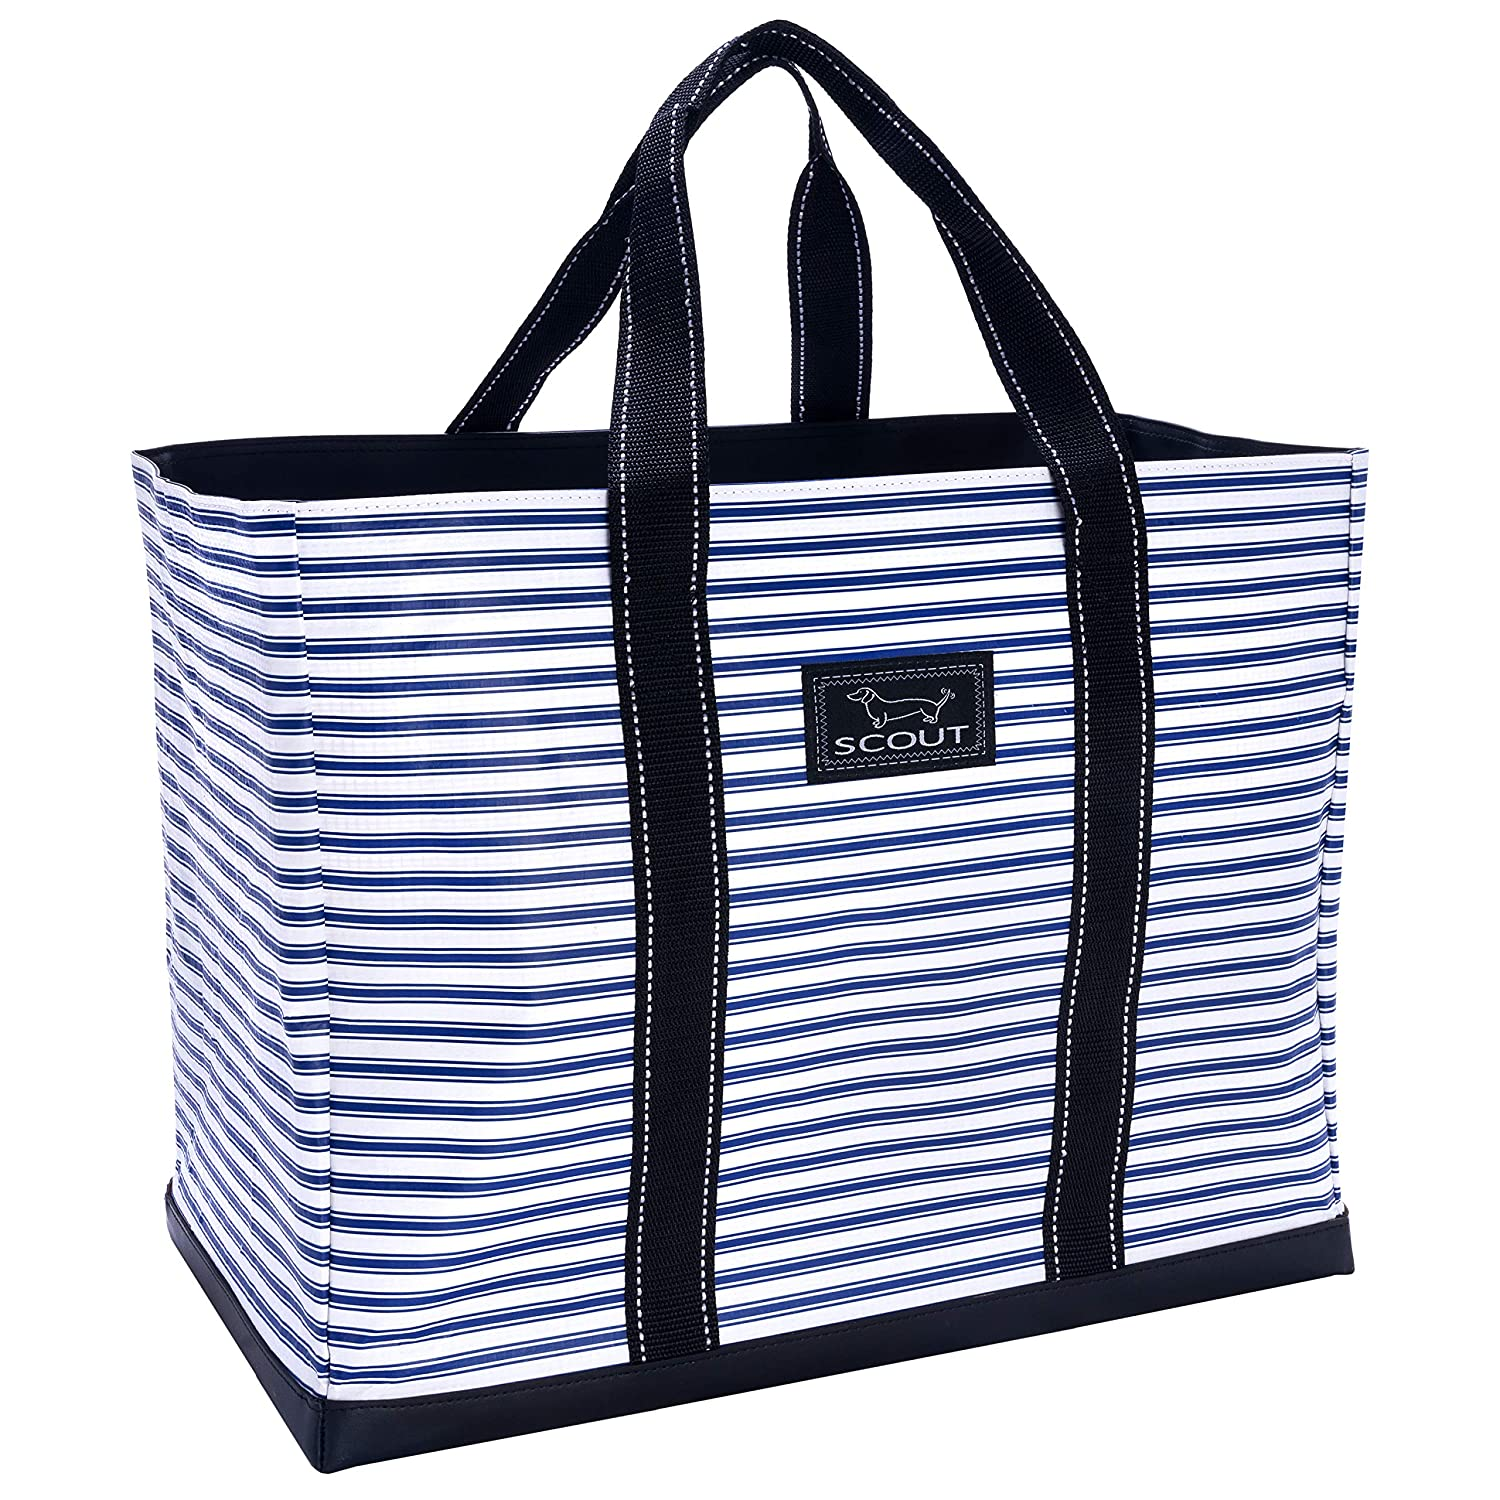 Stripe Right SCOUT Original DEANO Tote Bag, Water Resistant Large Tote Bag for Women (Multiple Patterns Available) (Rock The Boat)